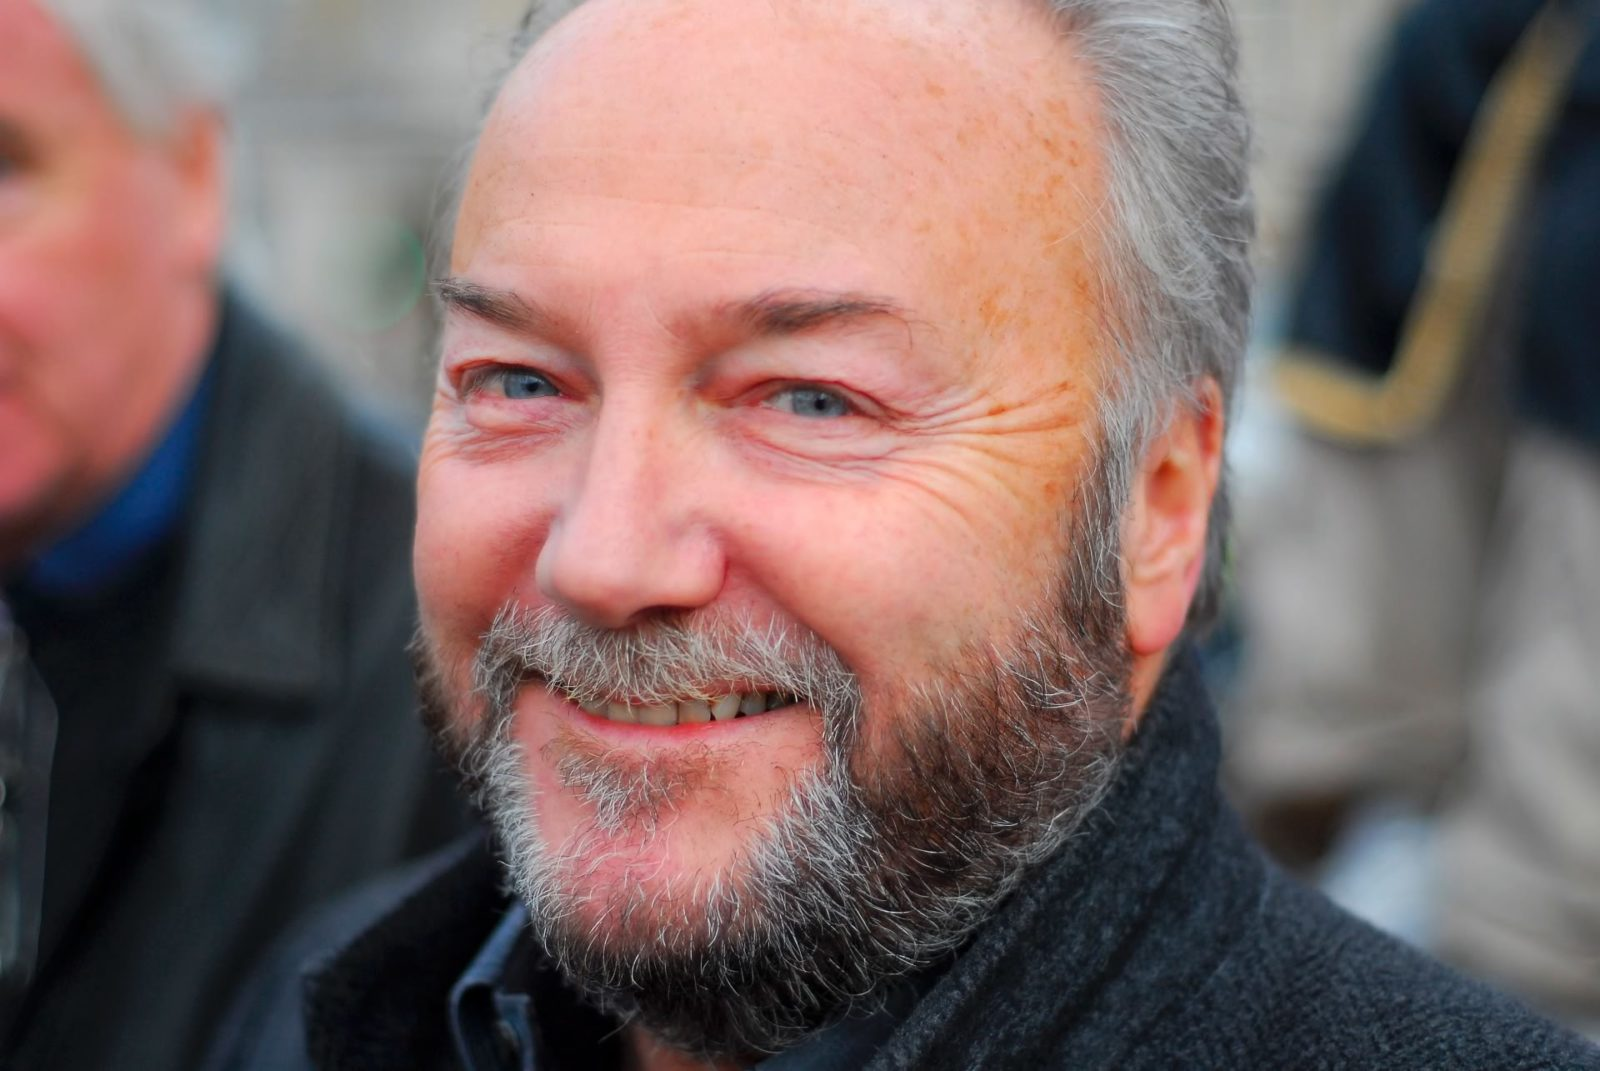 """George Galloway on NSA Spying: """"Those who sacrifice liberty for security will enjoy neither"""""""